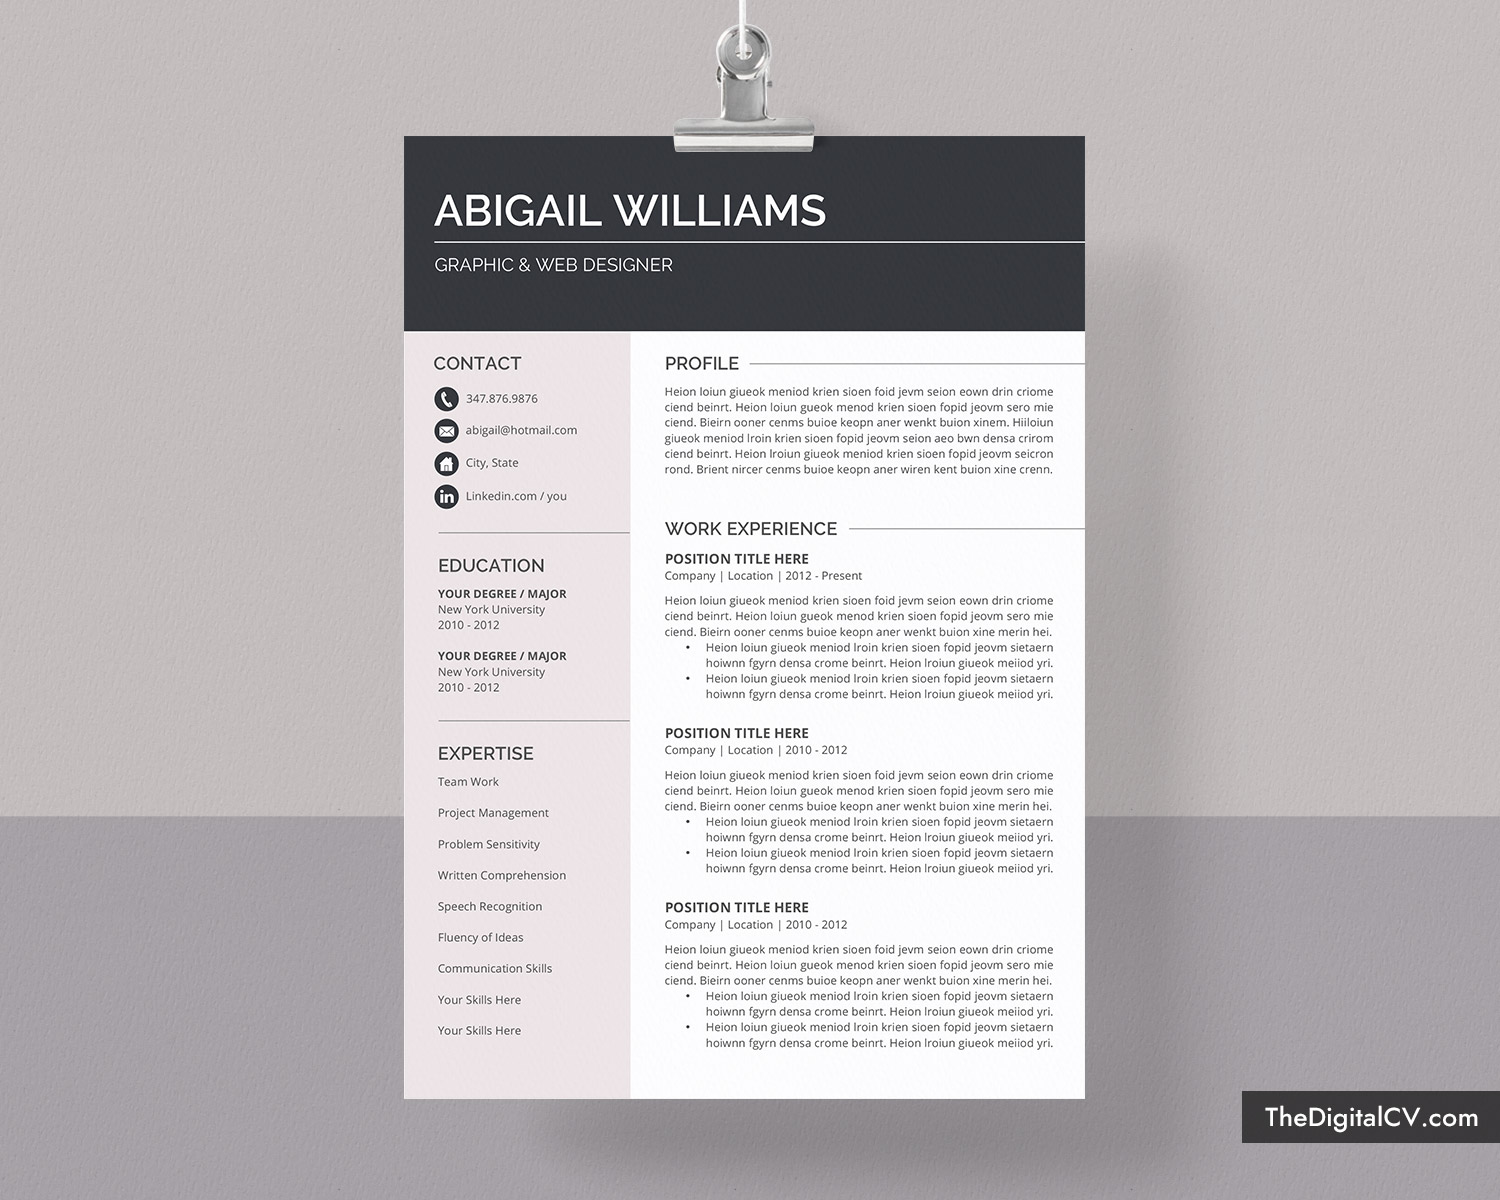 Modern Cv Template For Ms Word 2020 2021 Simple Basic Resume Template Cover Letter 1 3 Page Creative Professional Resume Job Resume Editable